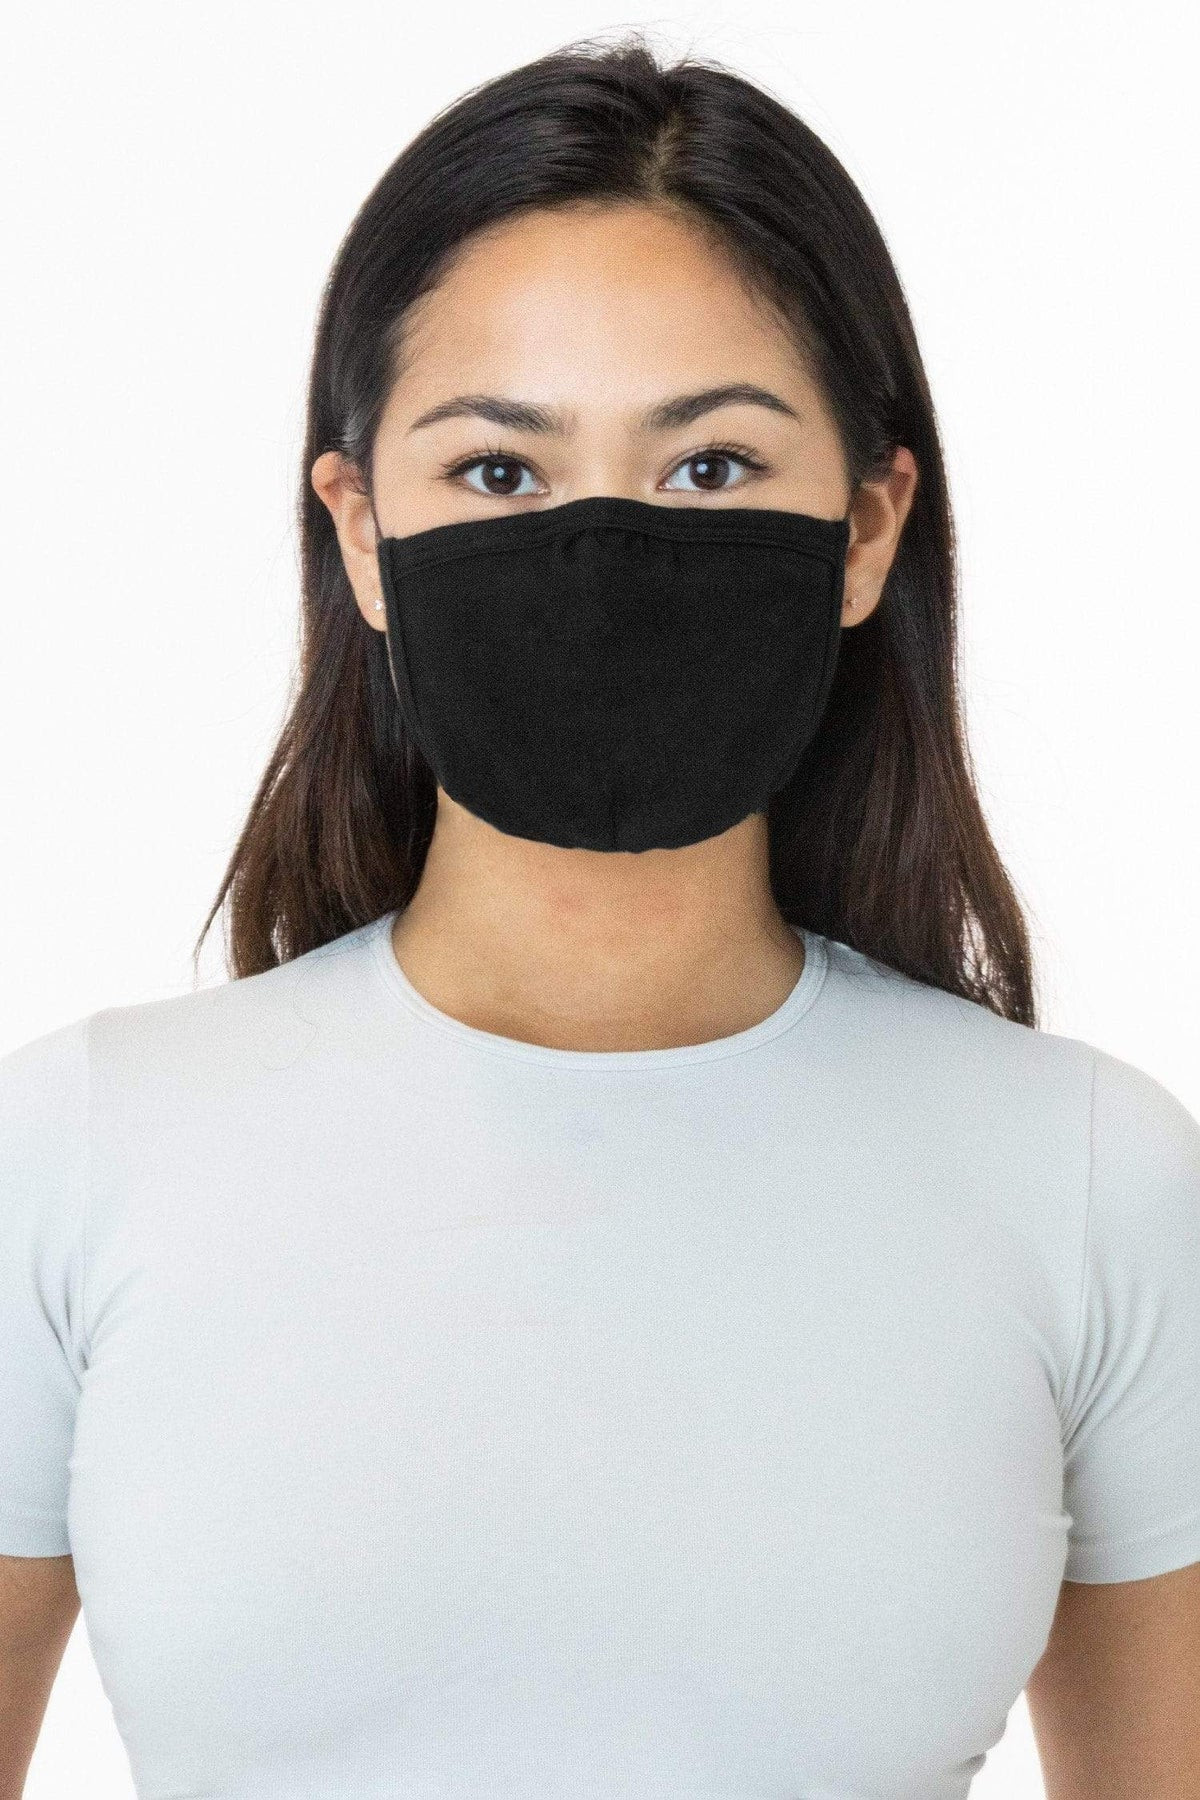 Where to buy fabric masks for a cause online | 1800x1200